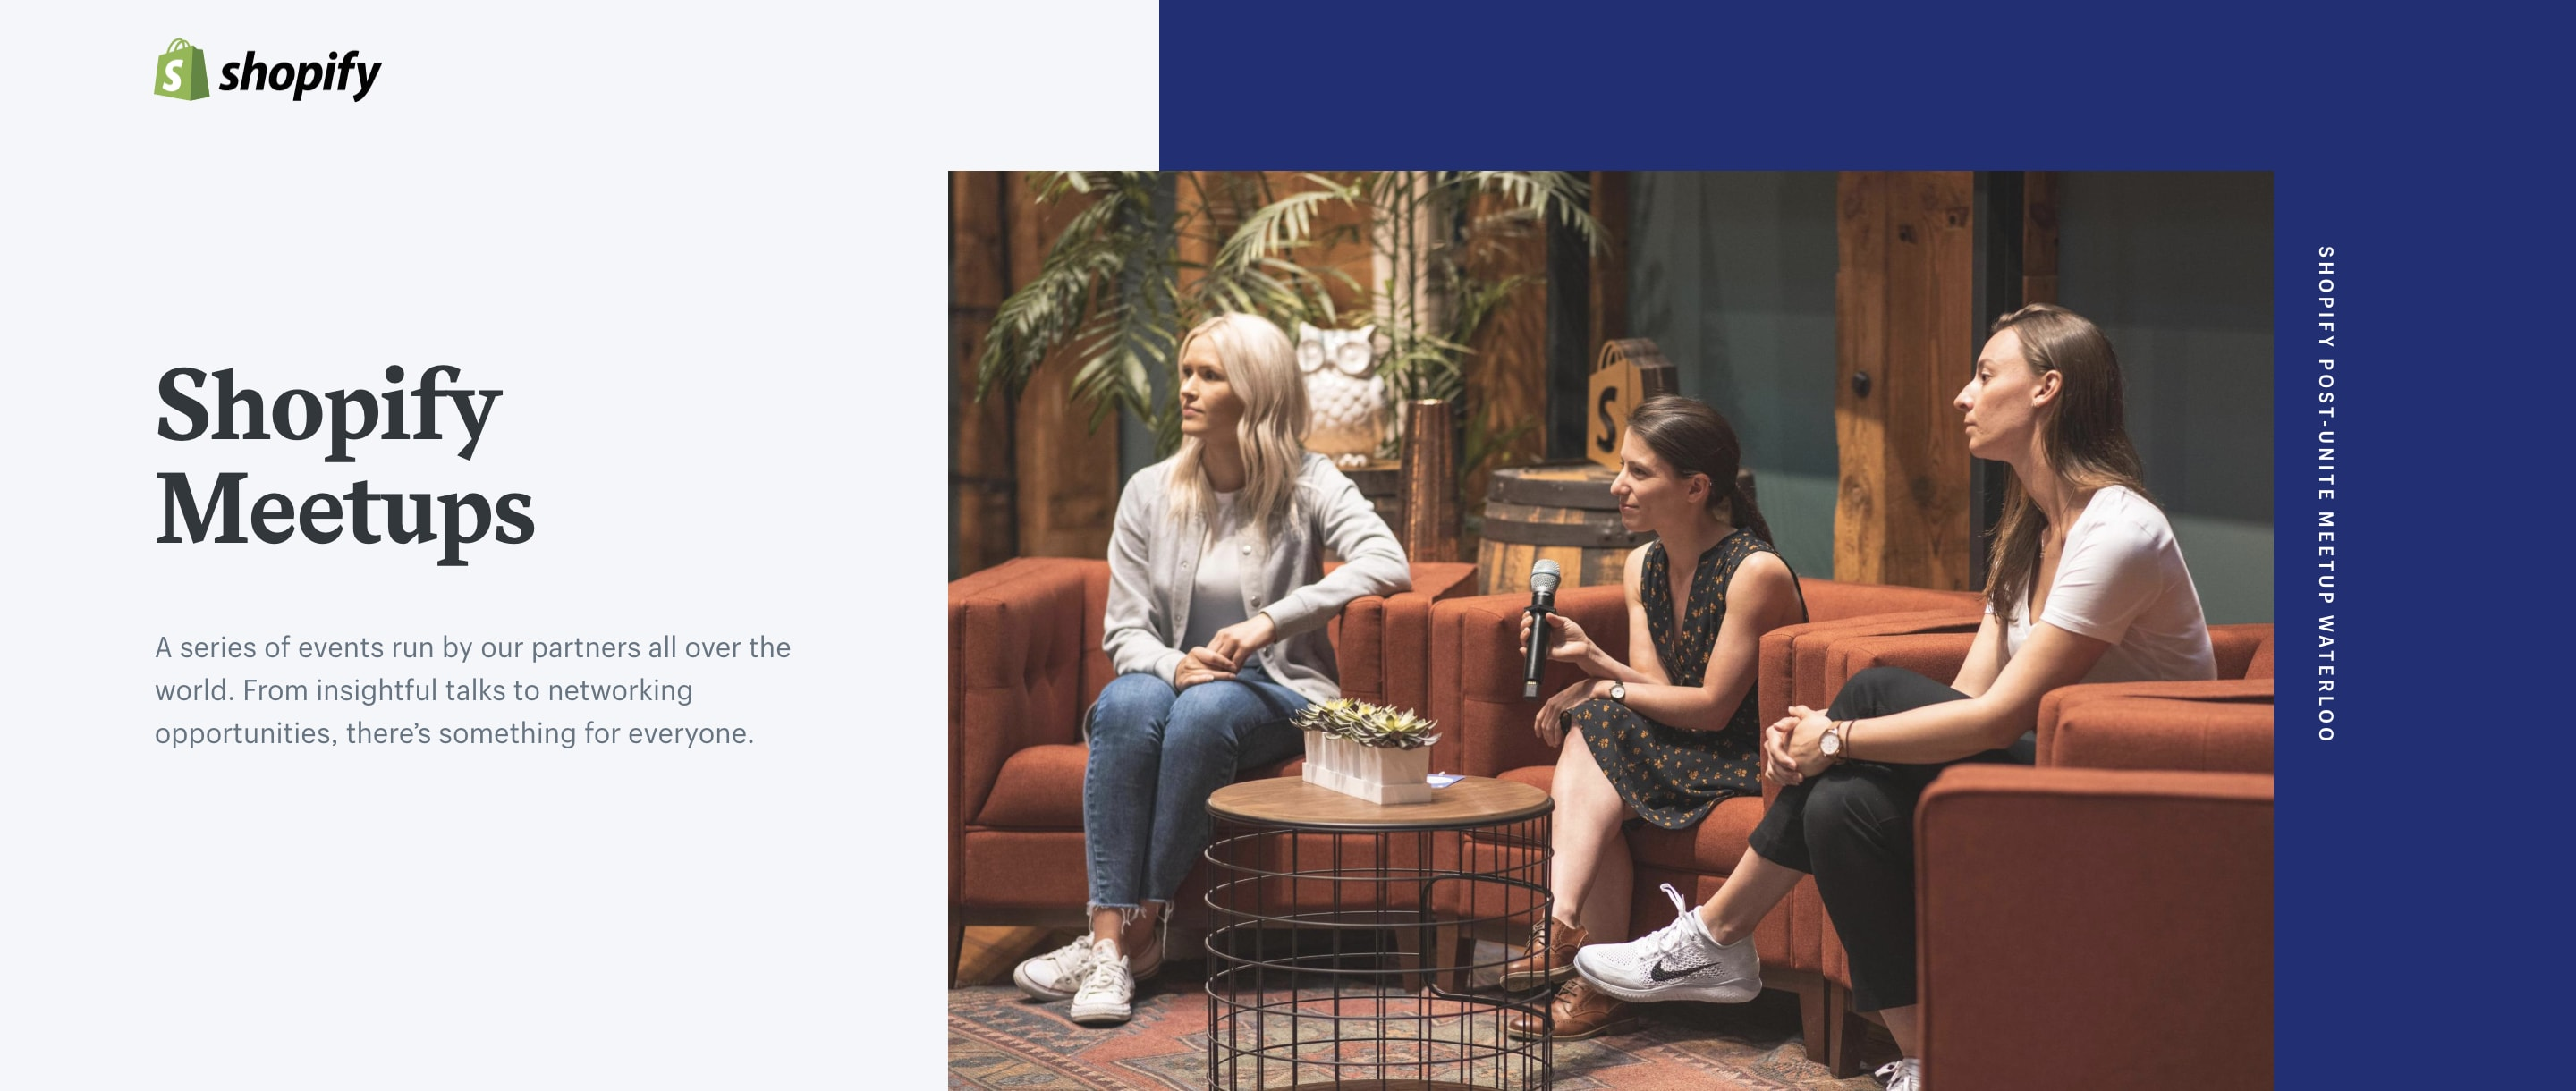 Screenshot from Shopify Meetups website